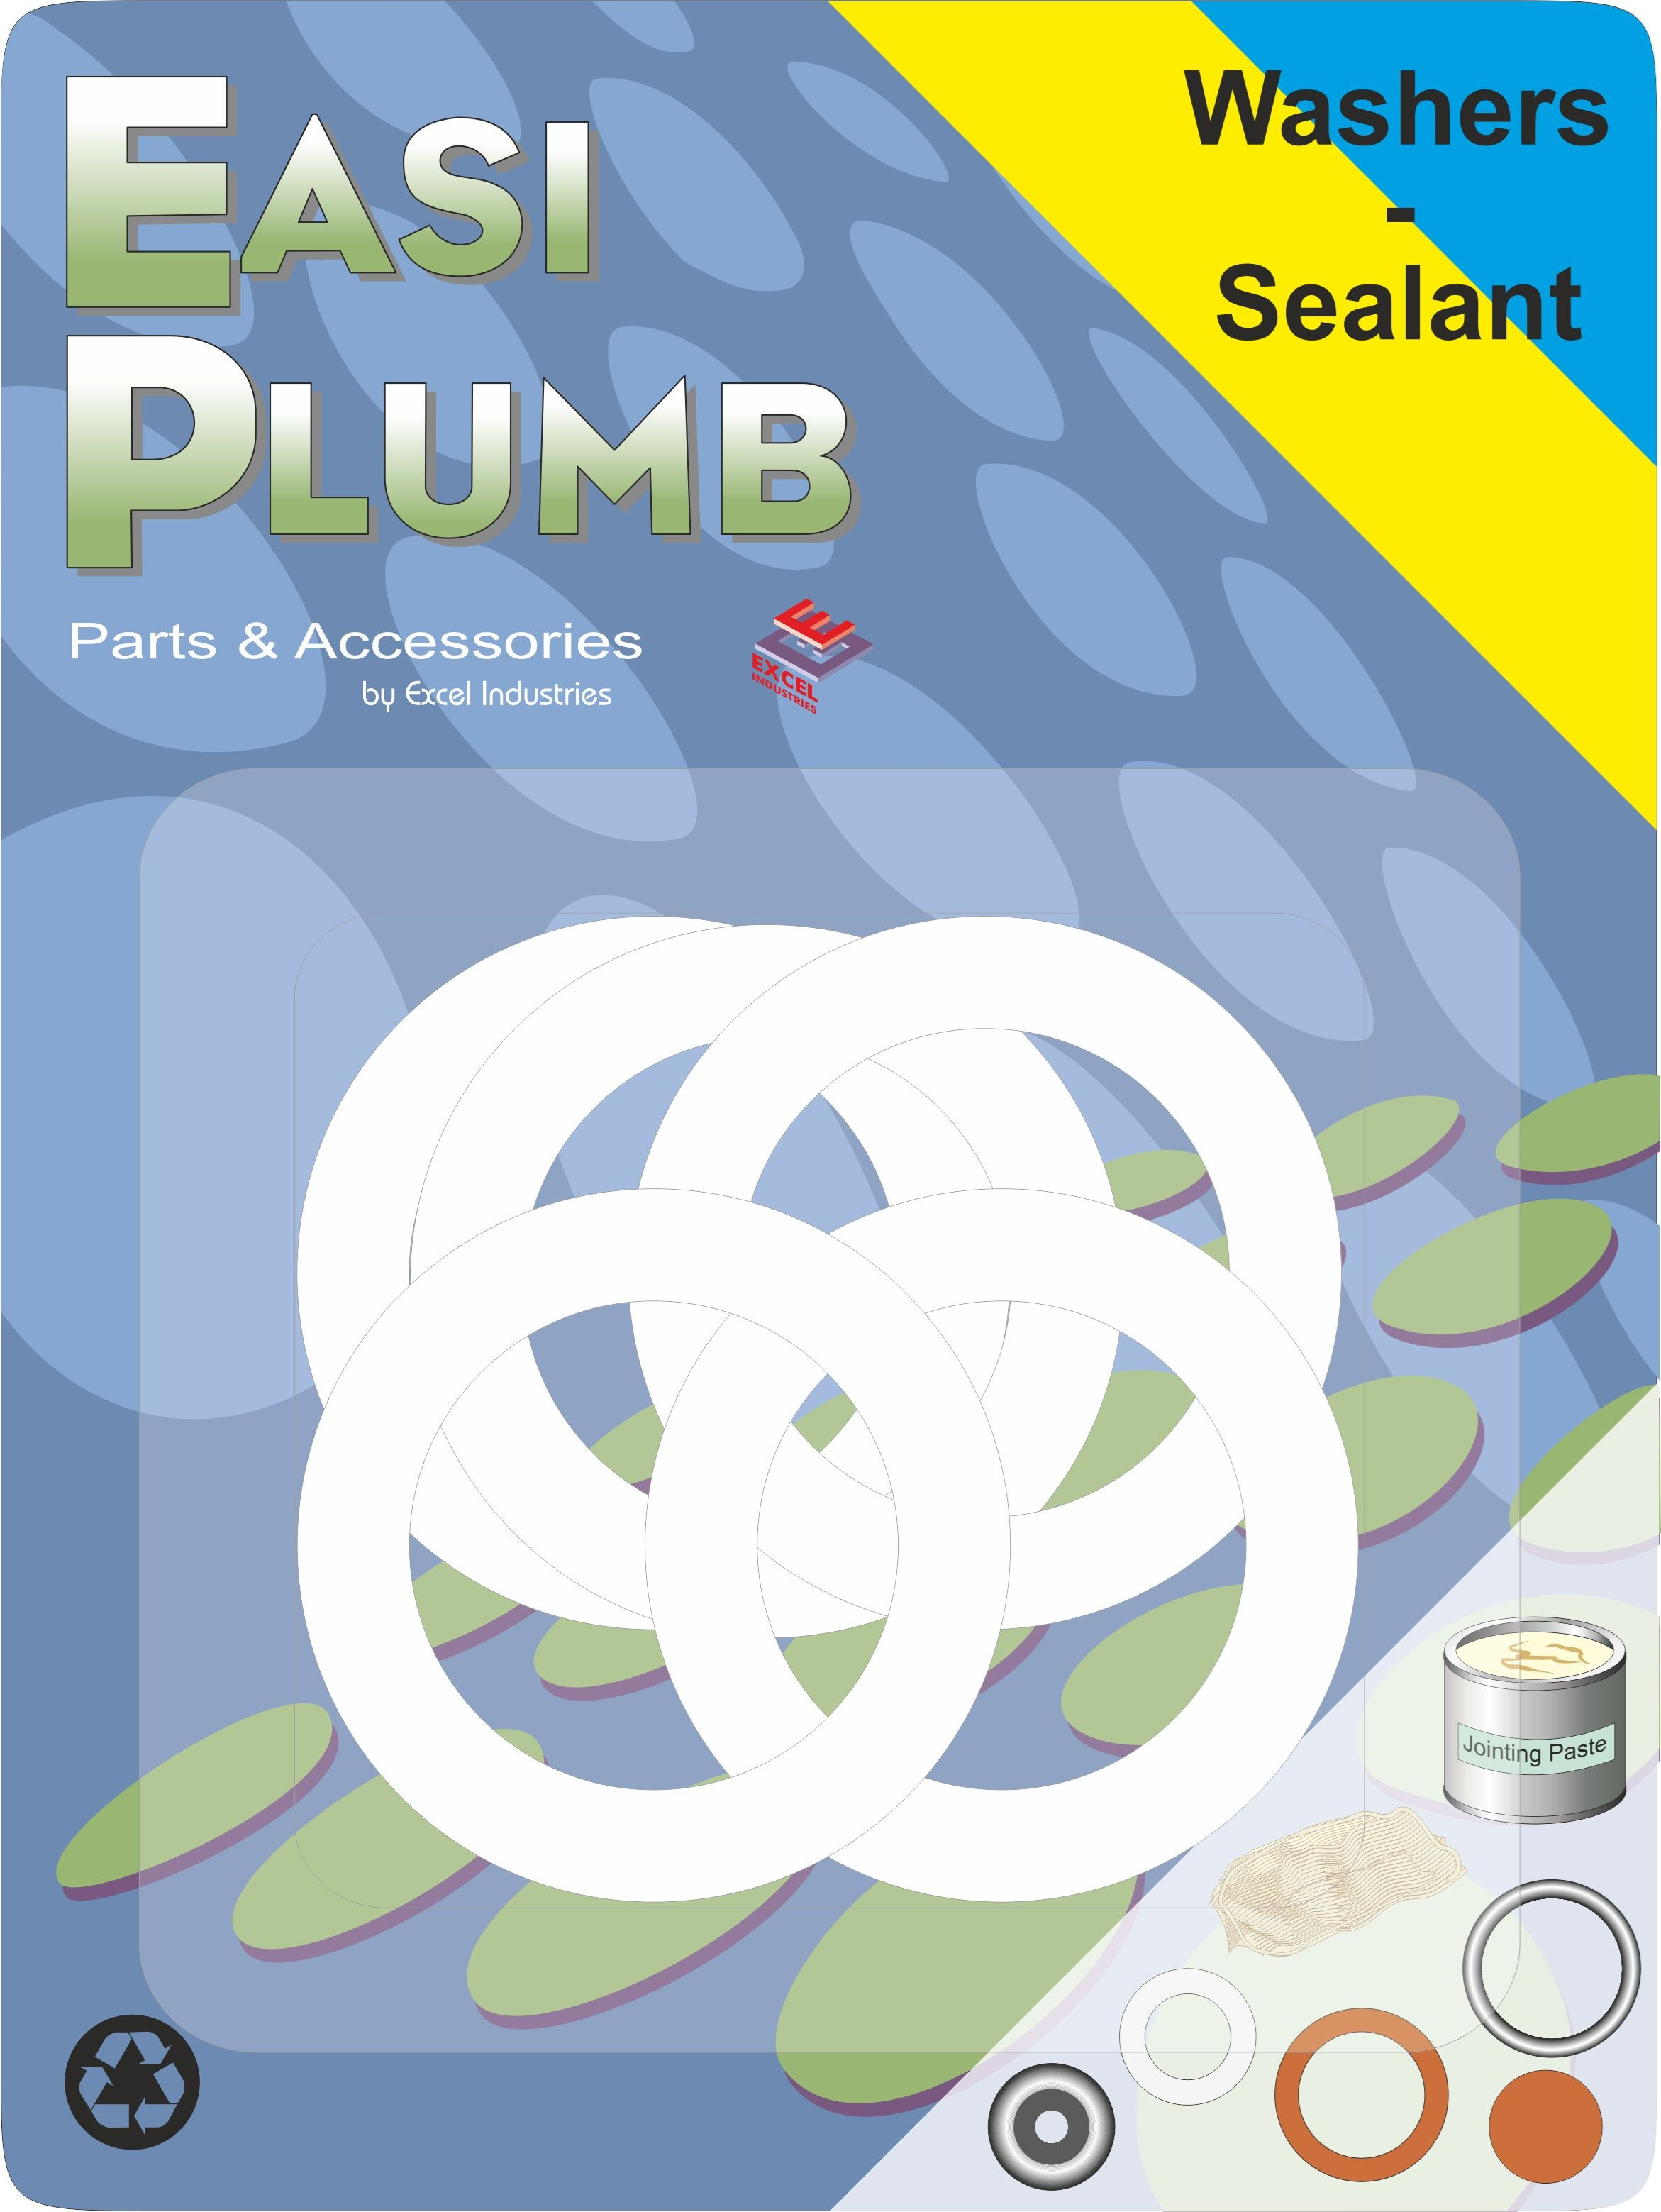 Easi Plumb PVC Washers - 5 Pack   Nuts, Bolts & Washers   Topline.ie